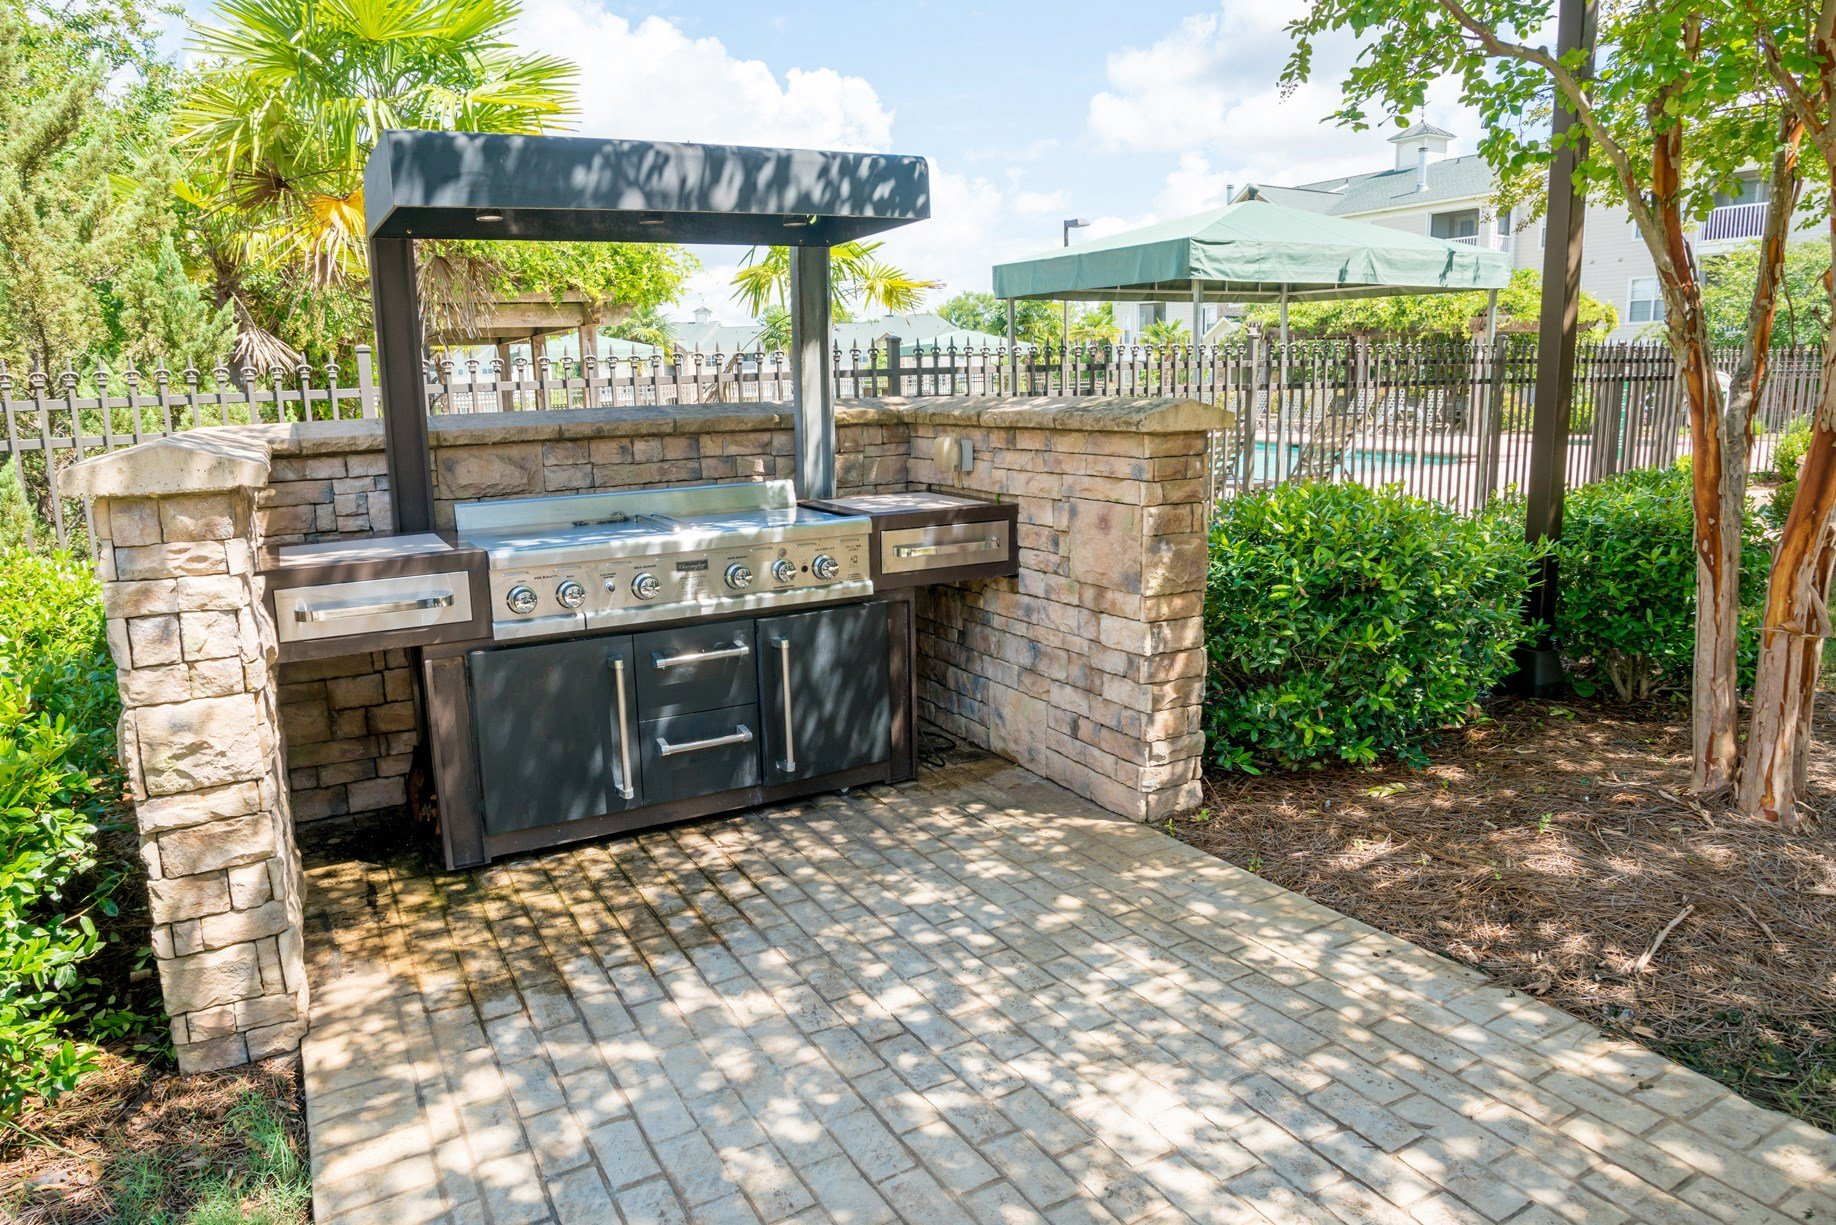 Grill at Verandas at Taylor Oaks Apartments in Montgomery, AL